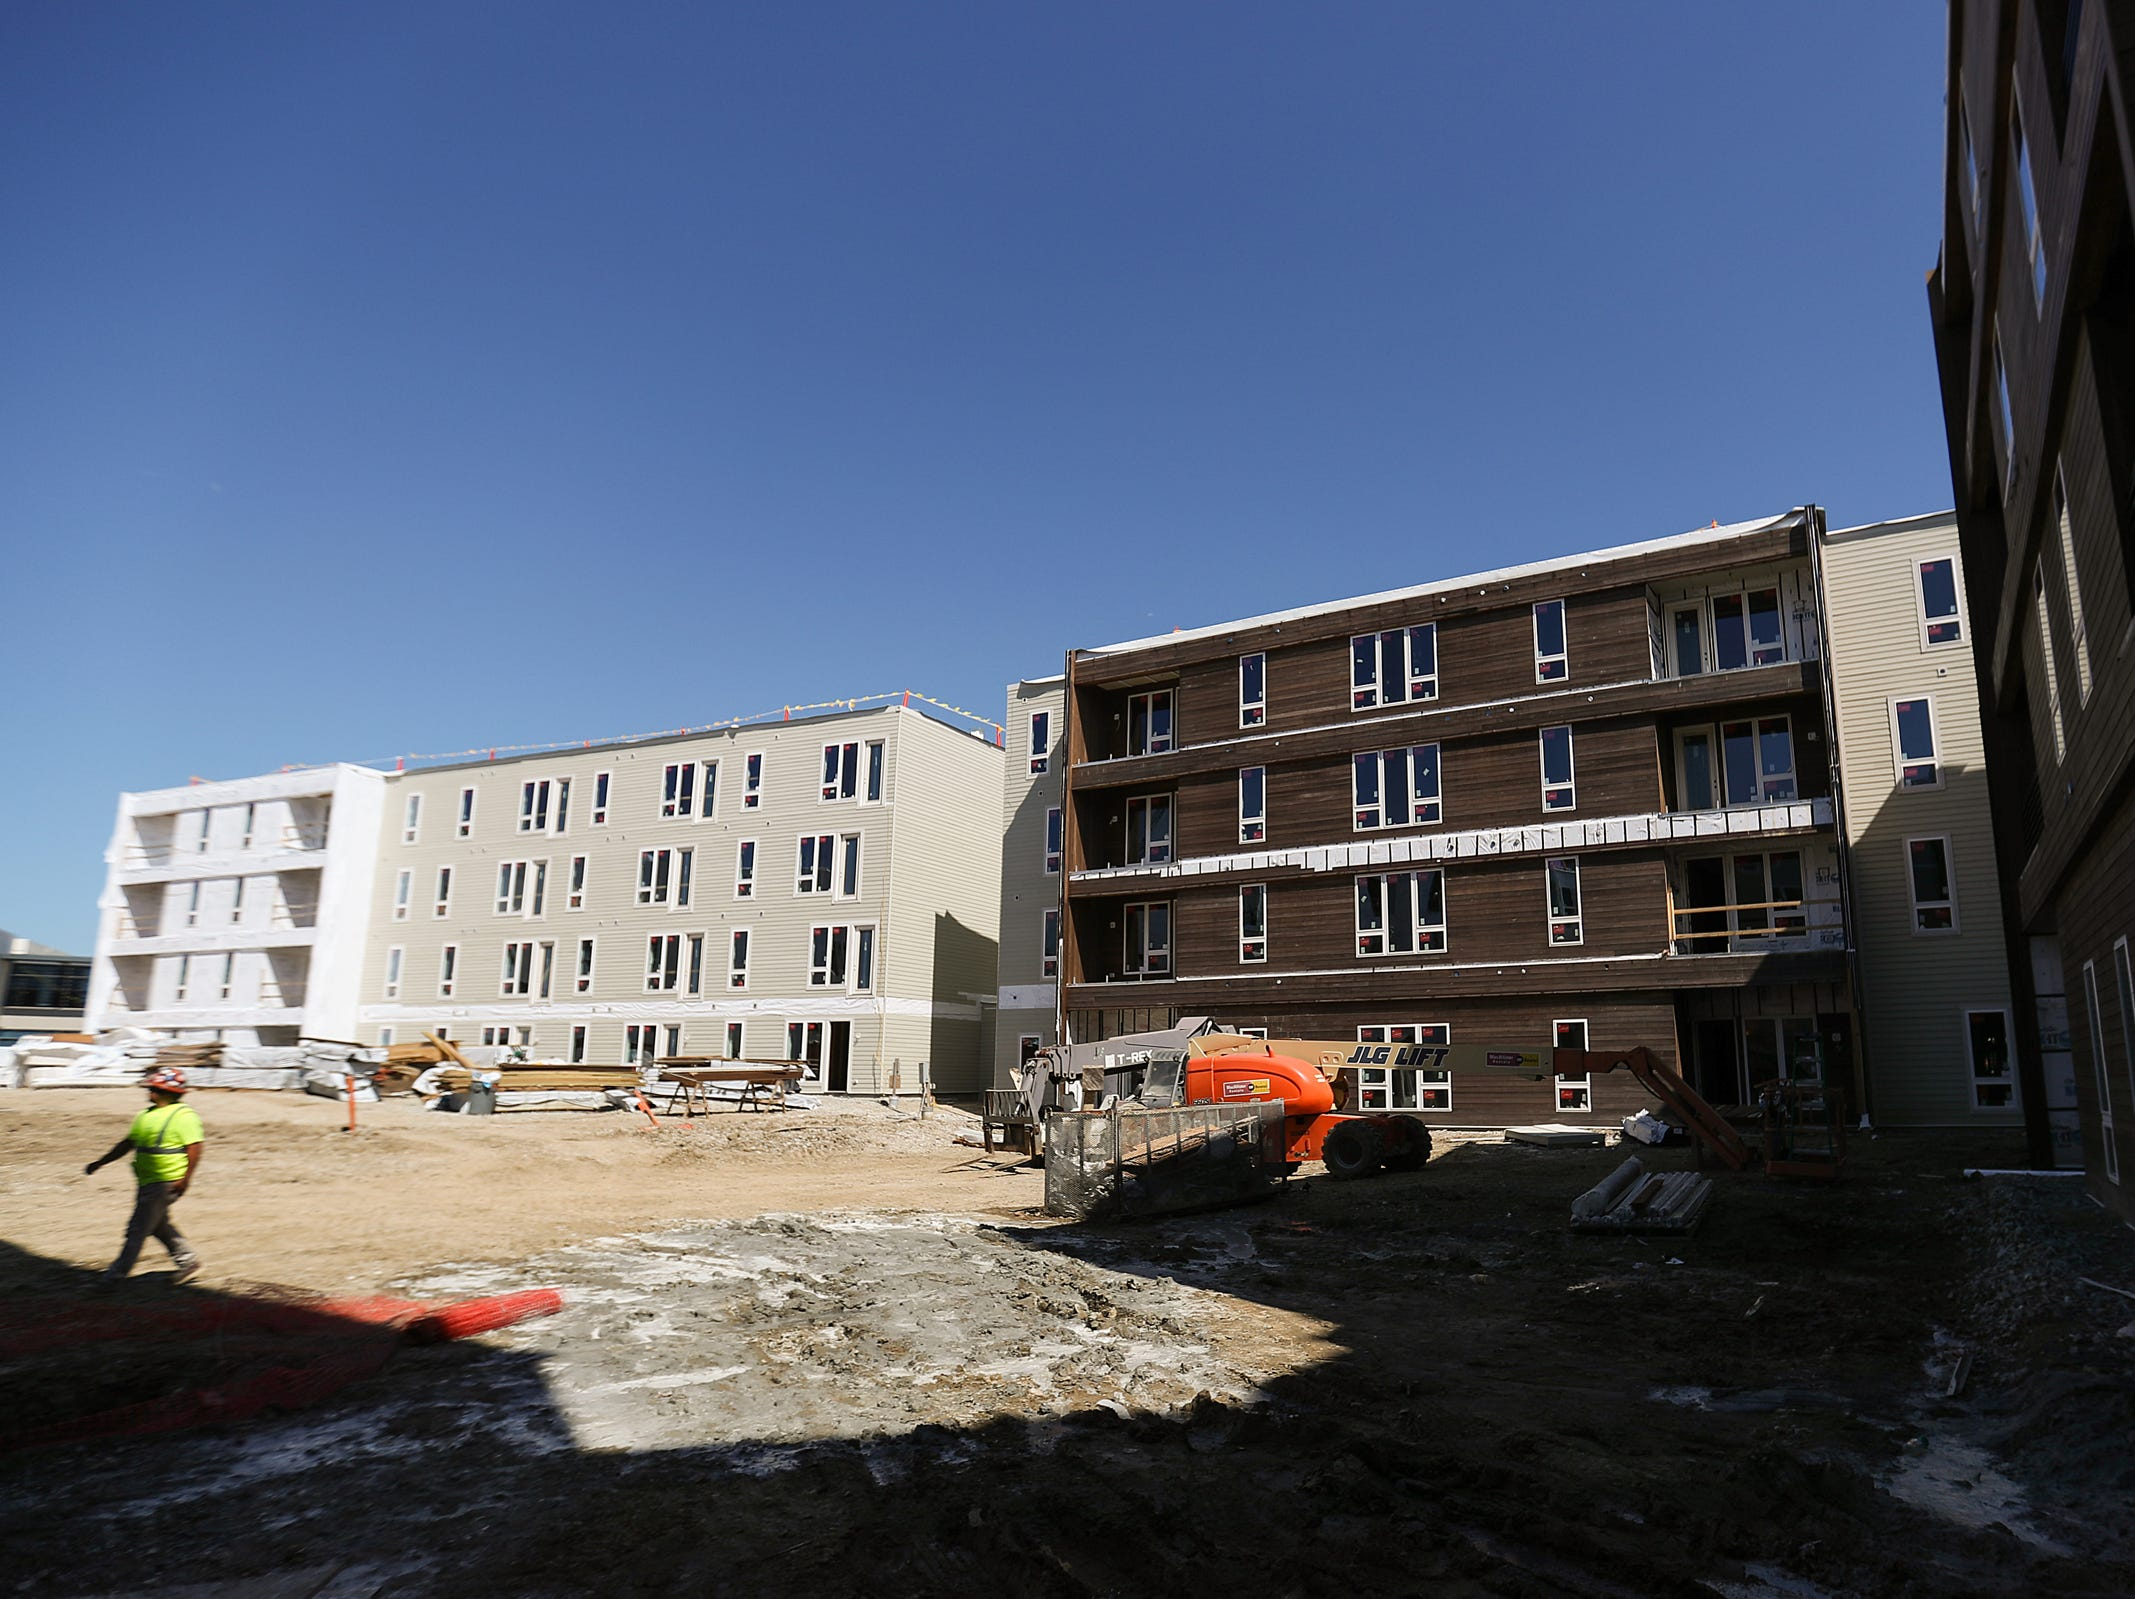 A mid-construction outdoor common area that will house TVs, fire pits, seating and more at the Spark Apartments in Fishers, Ind., is seen on Friday, Sept. 14, 2018. The apartments, at North Street and Lantern road, will 200 offer one-, two- and three-bedroom apartment units and 11 live/work spaces.